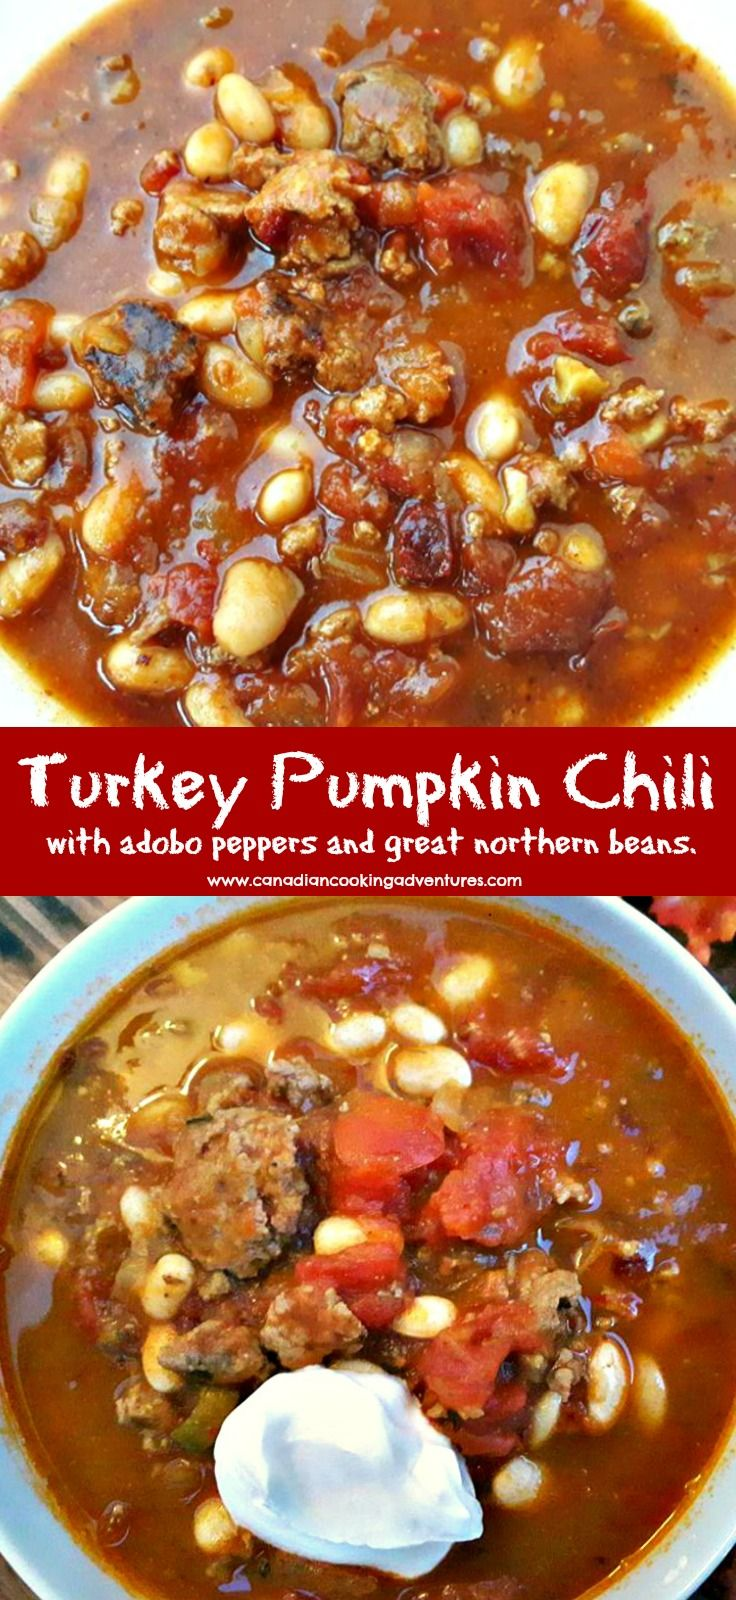 The colder weather calls for cozy food, and what better way to warm up then with a hot bowl of Turkey Pumpkin Chili.The pumpkin puree helps to create a creamy satisfying texture and warms the soul. Now thisis not a sweet chili like some may think, and that is because we are adding green chiles,...